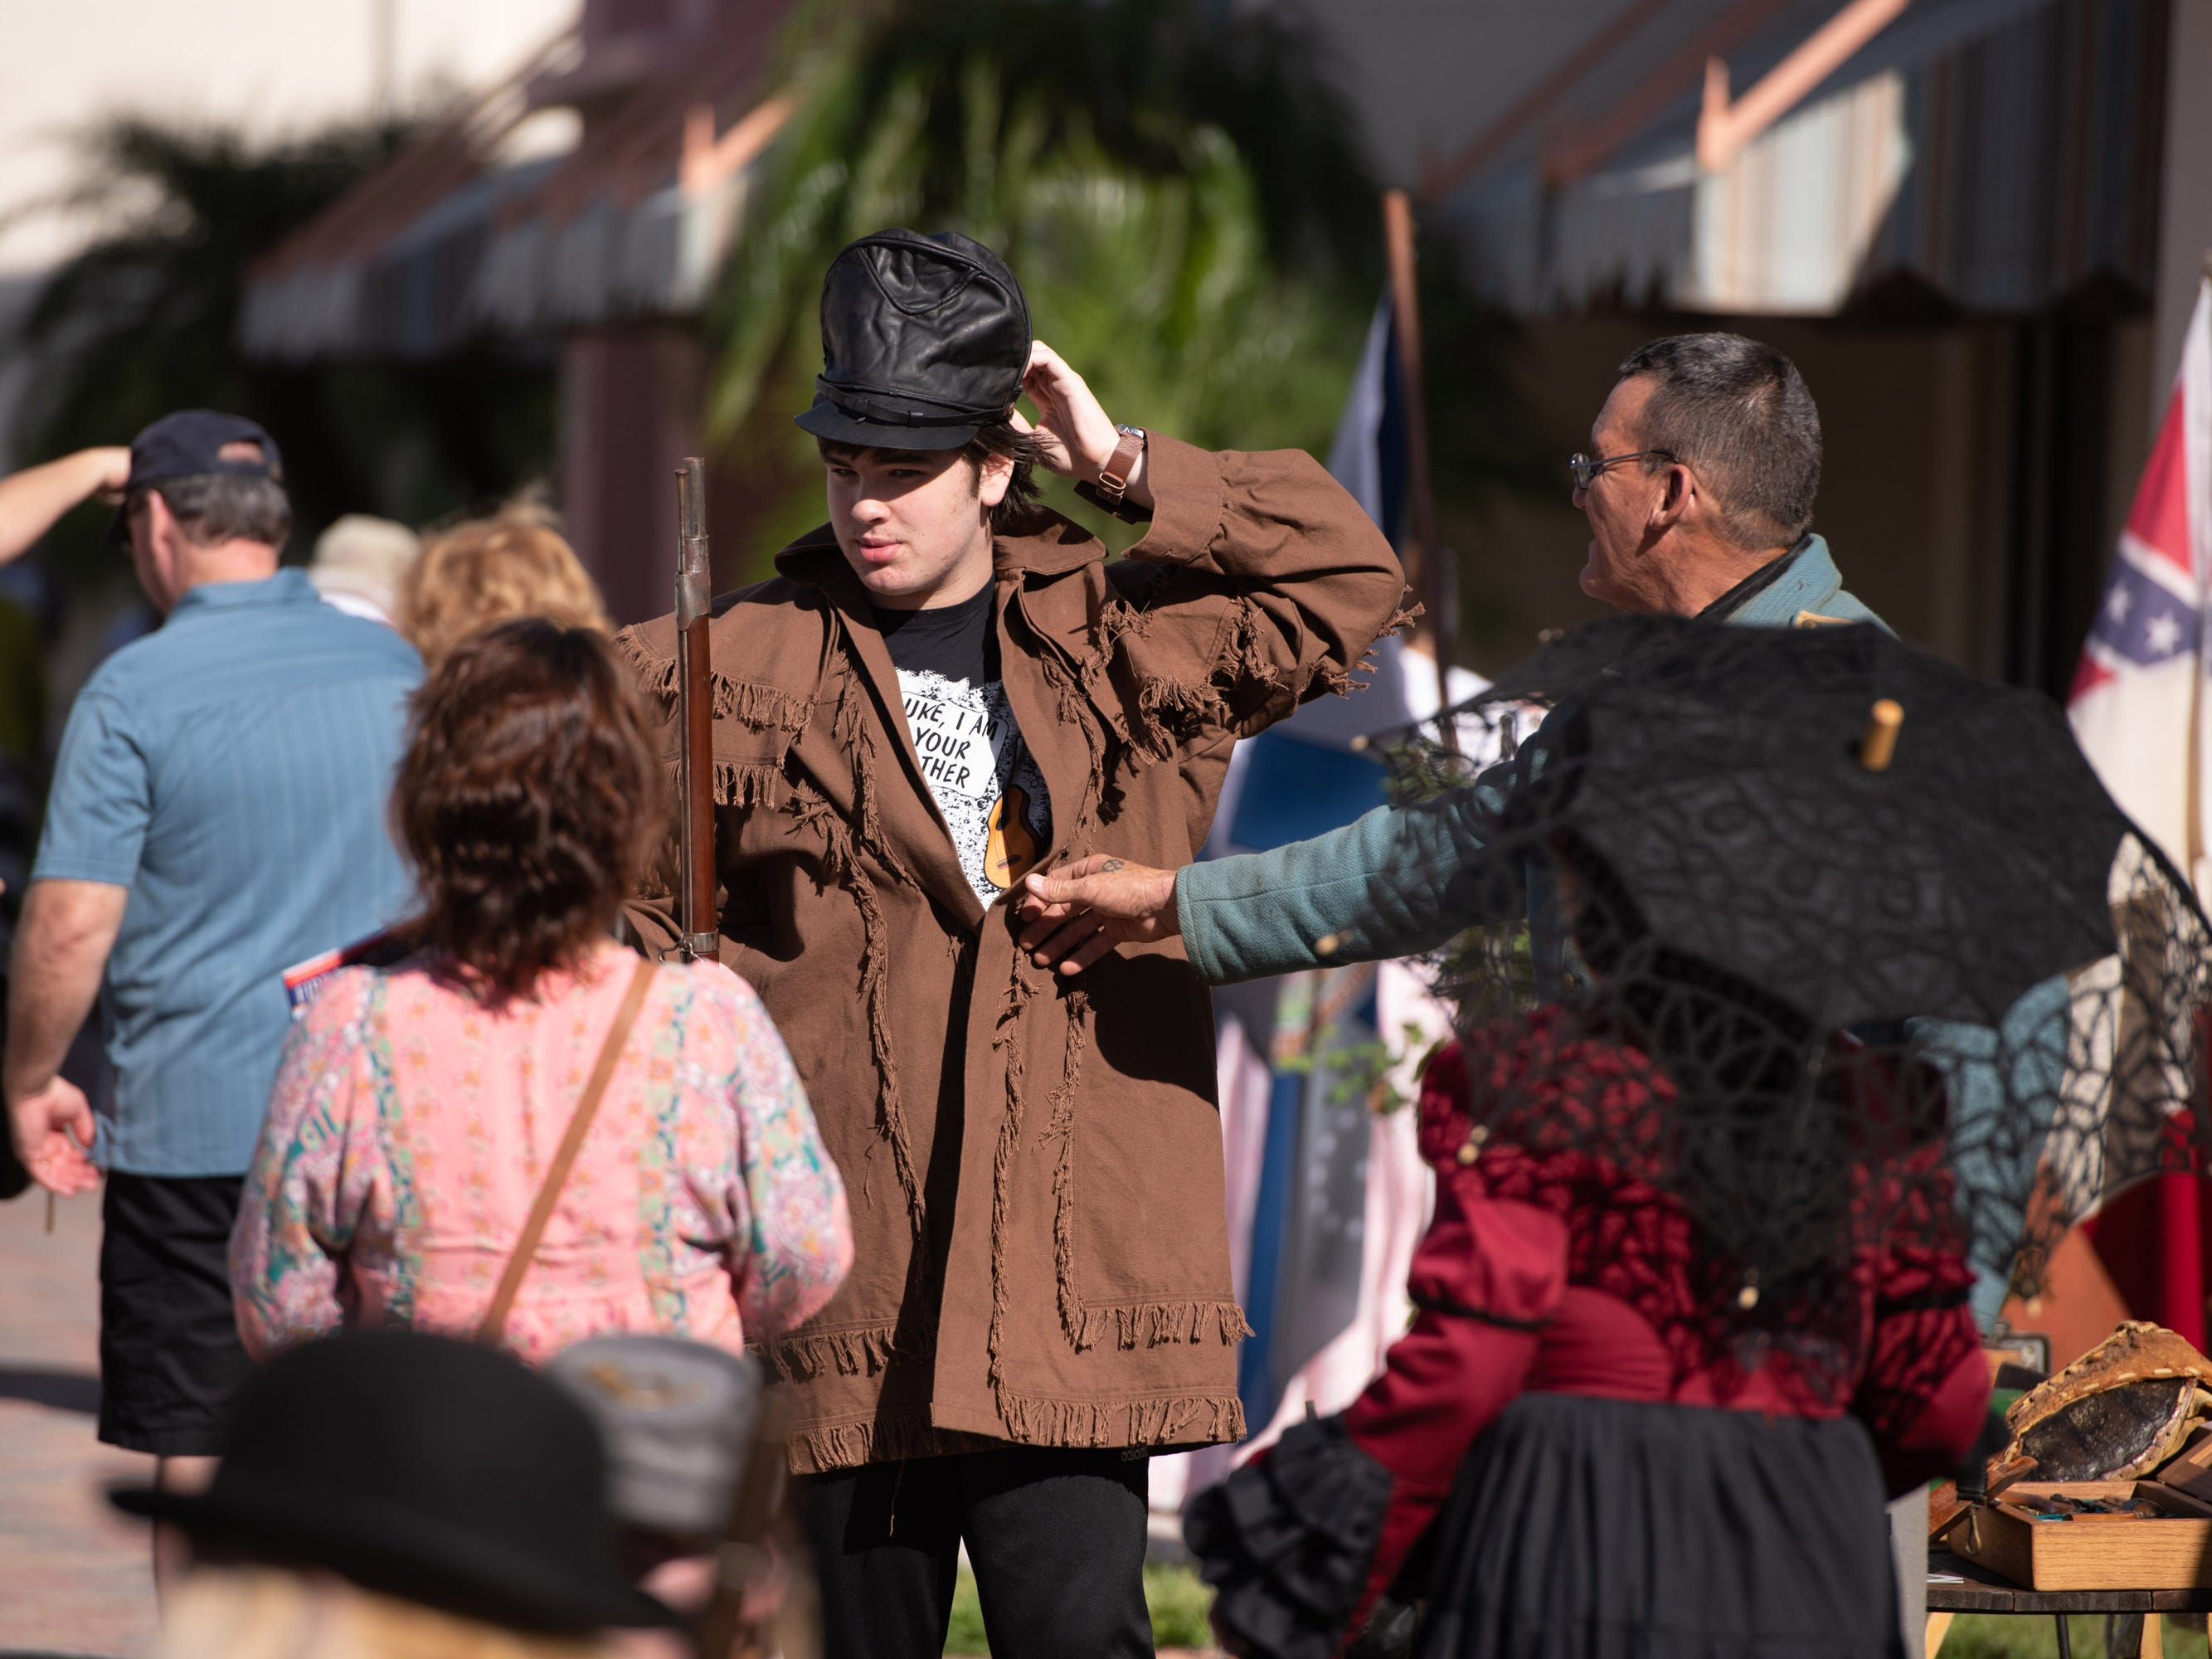 The third annual Treasure Coast History Festival featured historical re-enactors depicting life on the Treasure Coast in the 1800s to the early 1900s, on Saturday, Jan. 12, 2019, in downtown Fort Pierce.